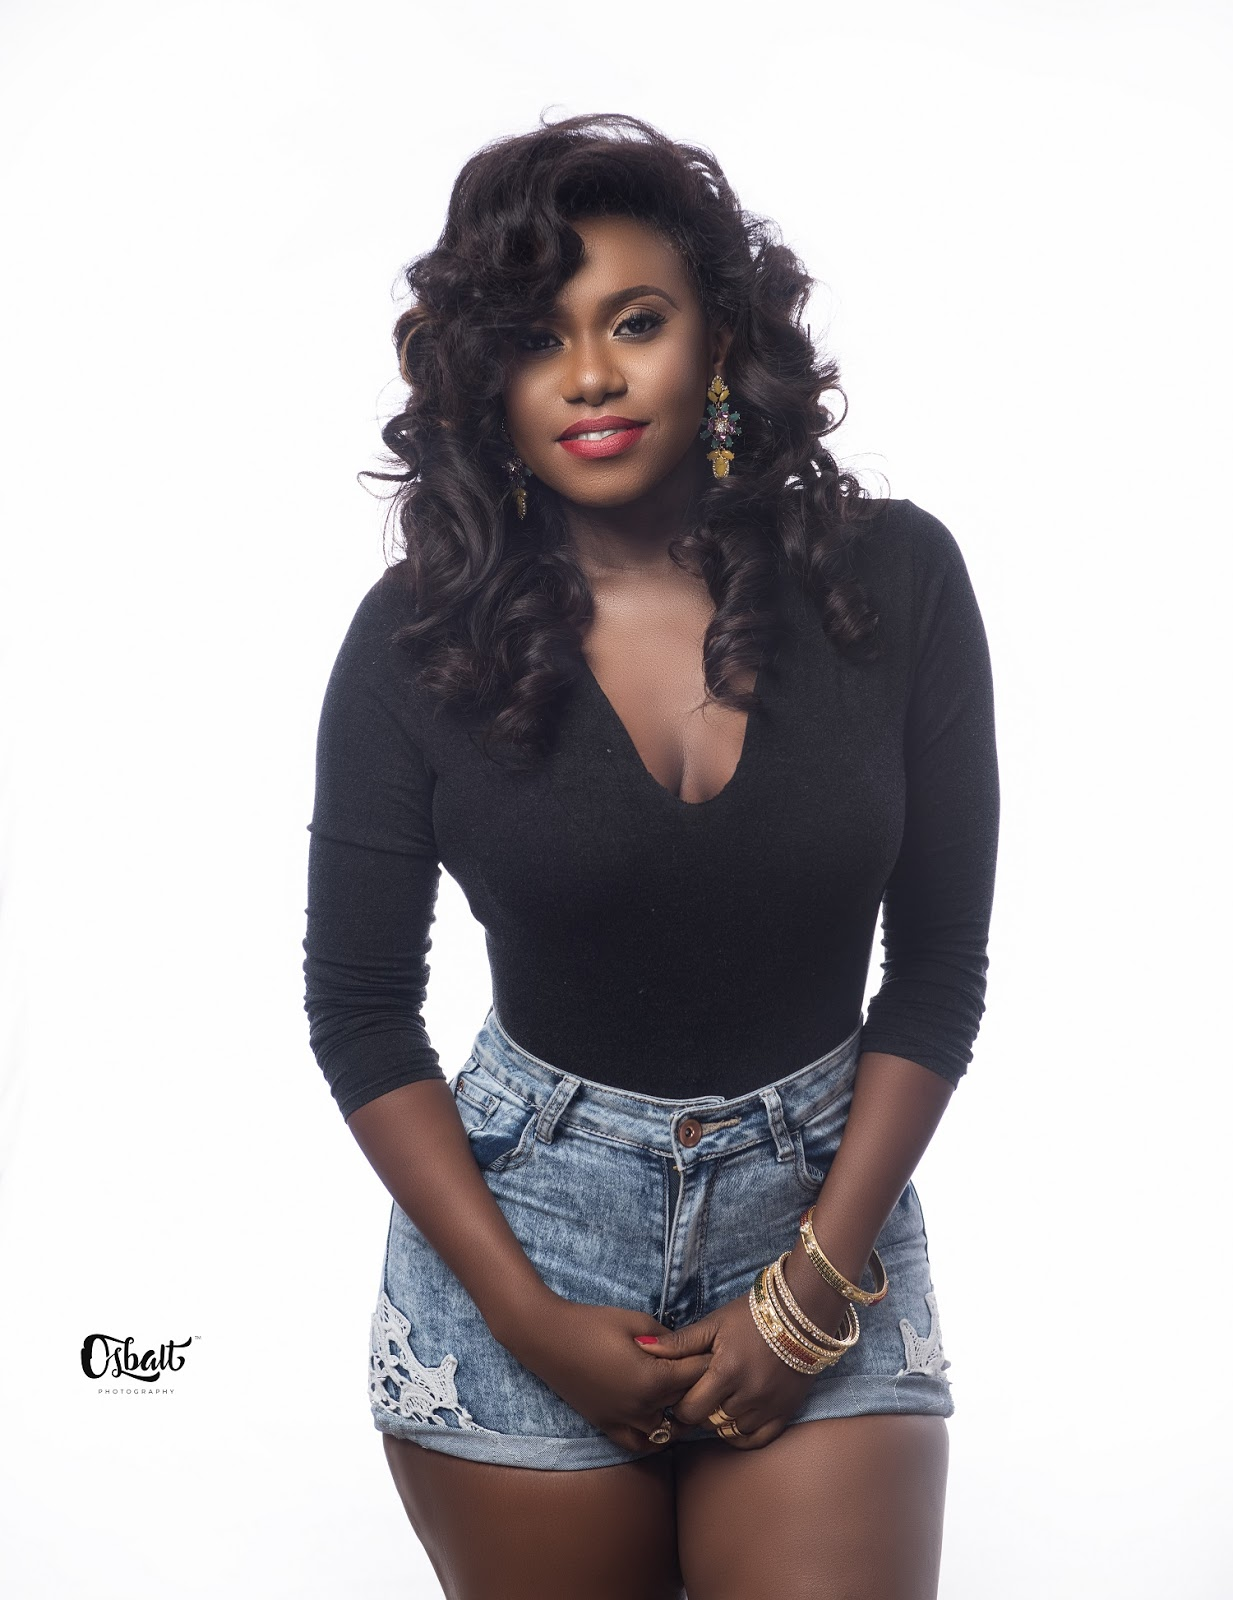 Absolute Hearts: Singer Niniola Drops New Jaw-dropping Photos